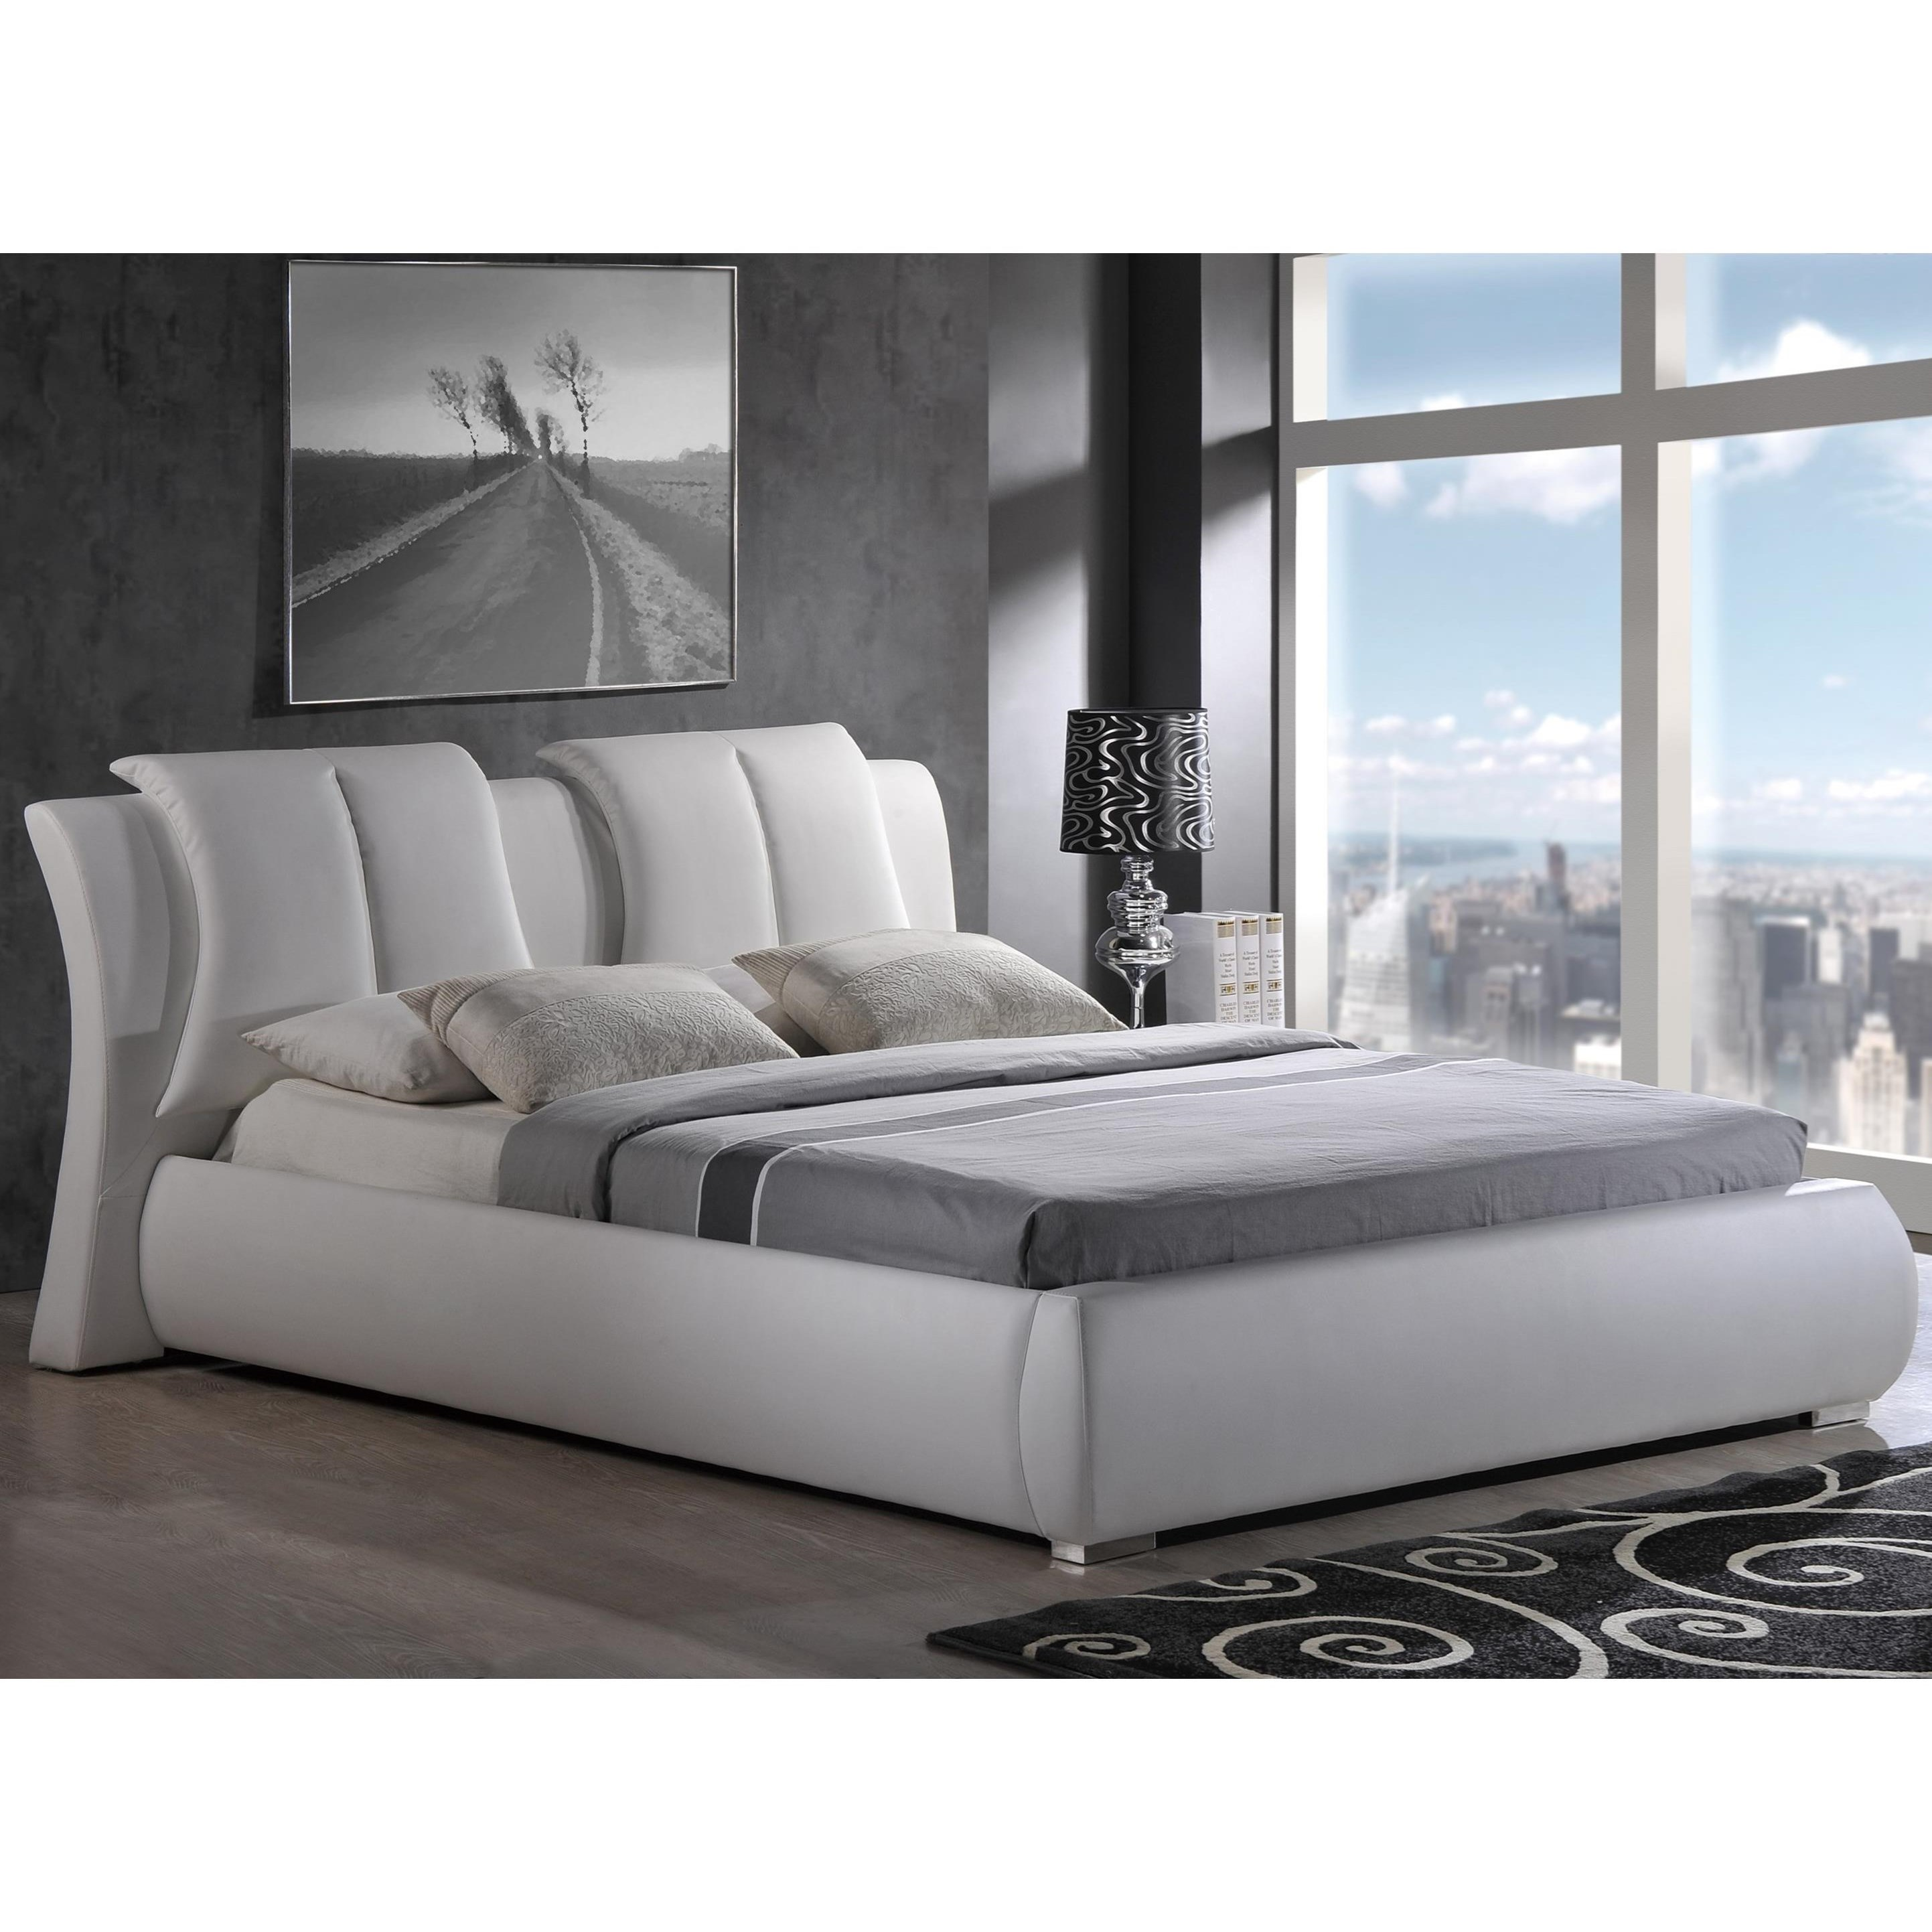 8269 Padded King Bed by Global Furniture at Value City Furniture